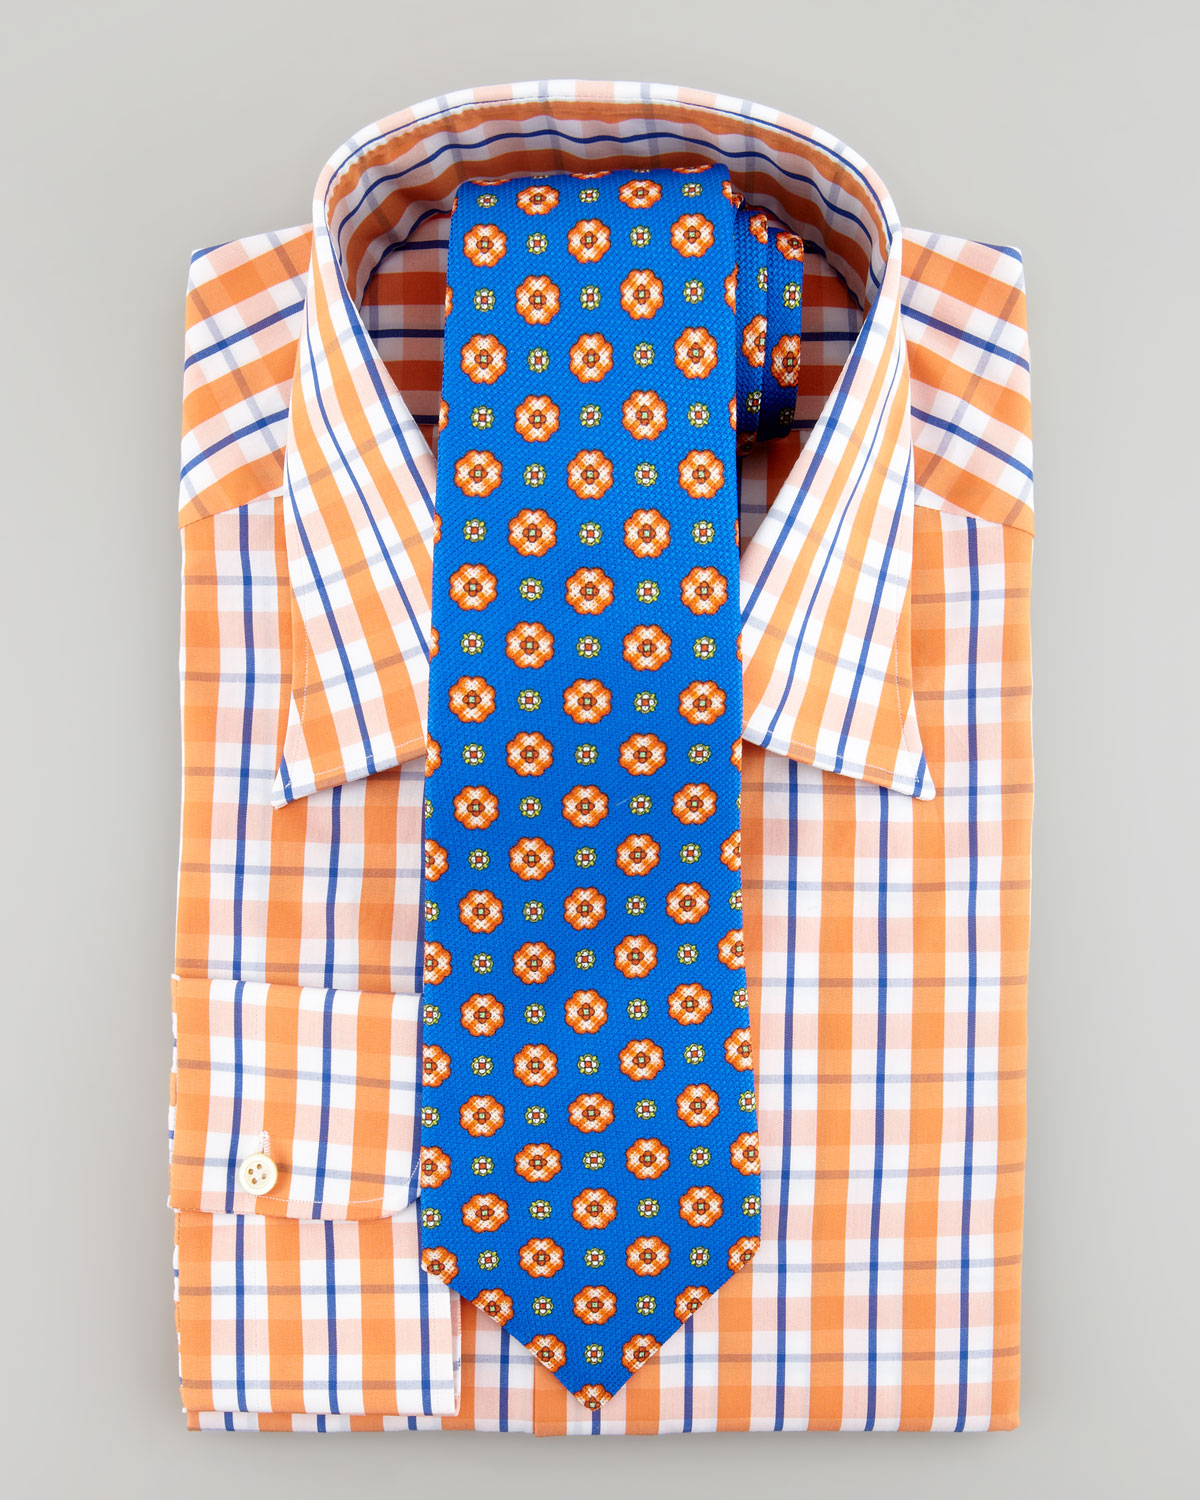 Lyst kiton bold tattersall check dress shirt orange in for Blue check dress shirt